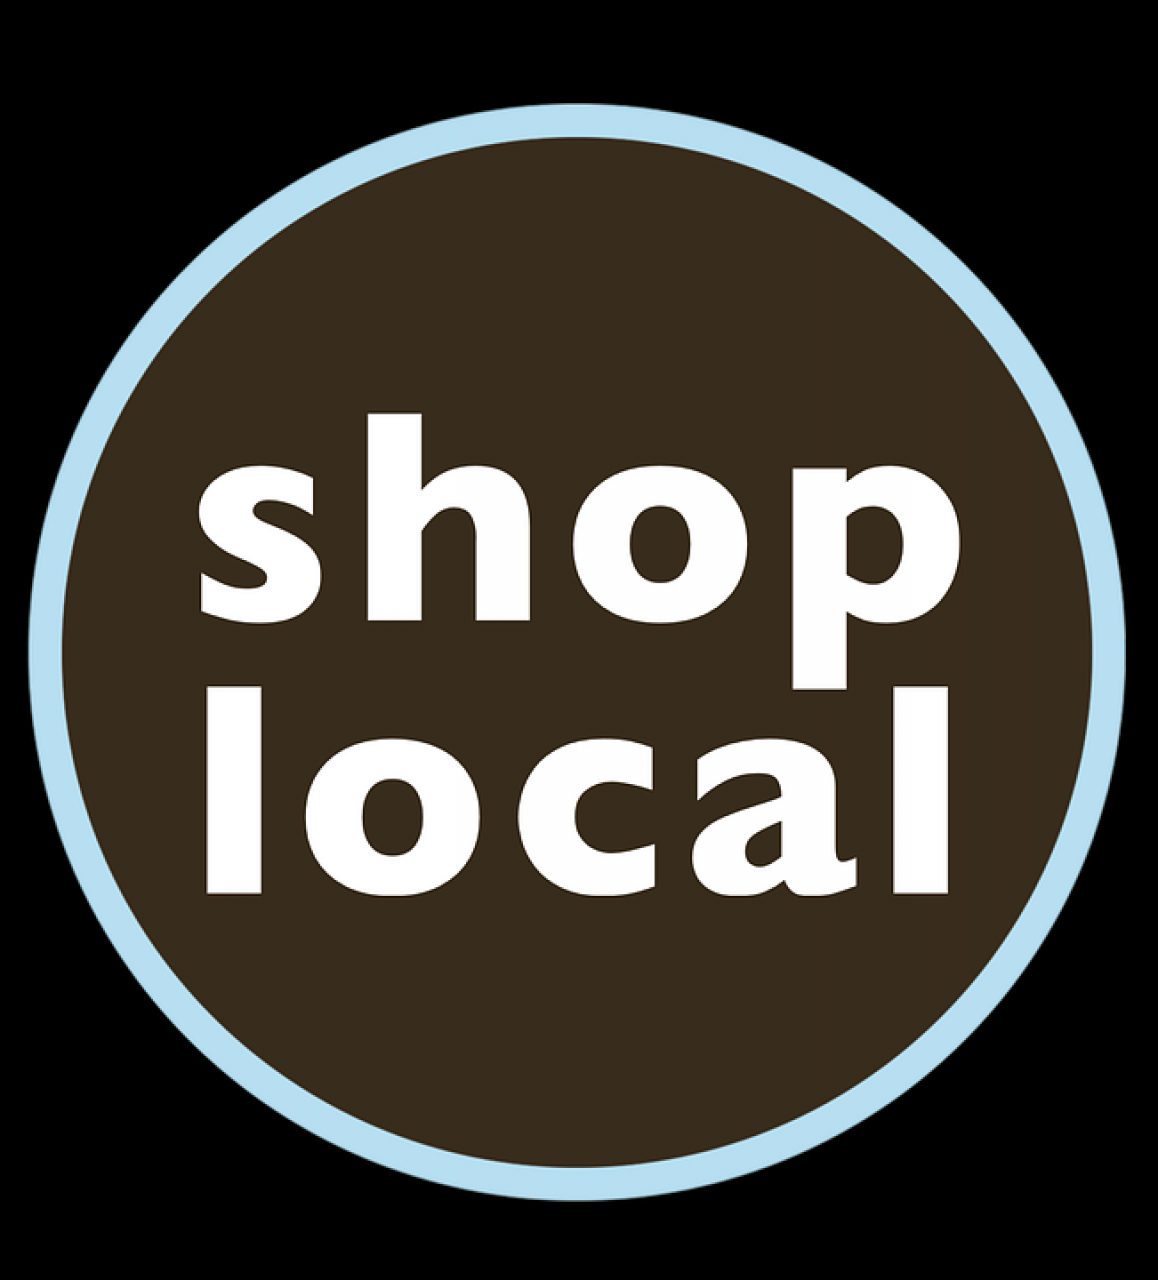 >Go Local shop local